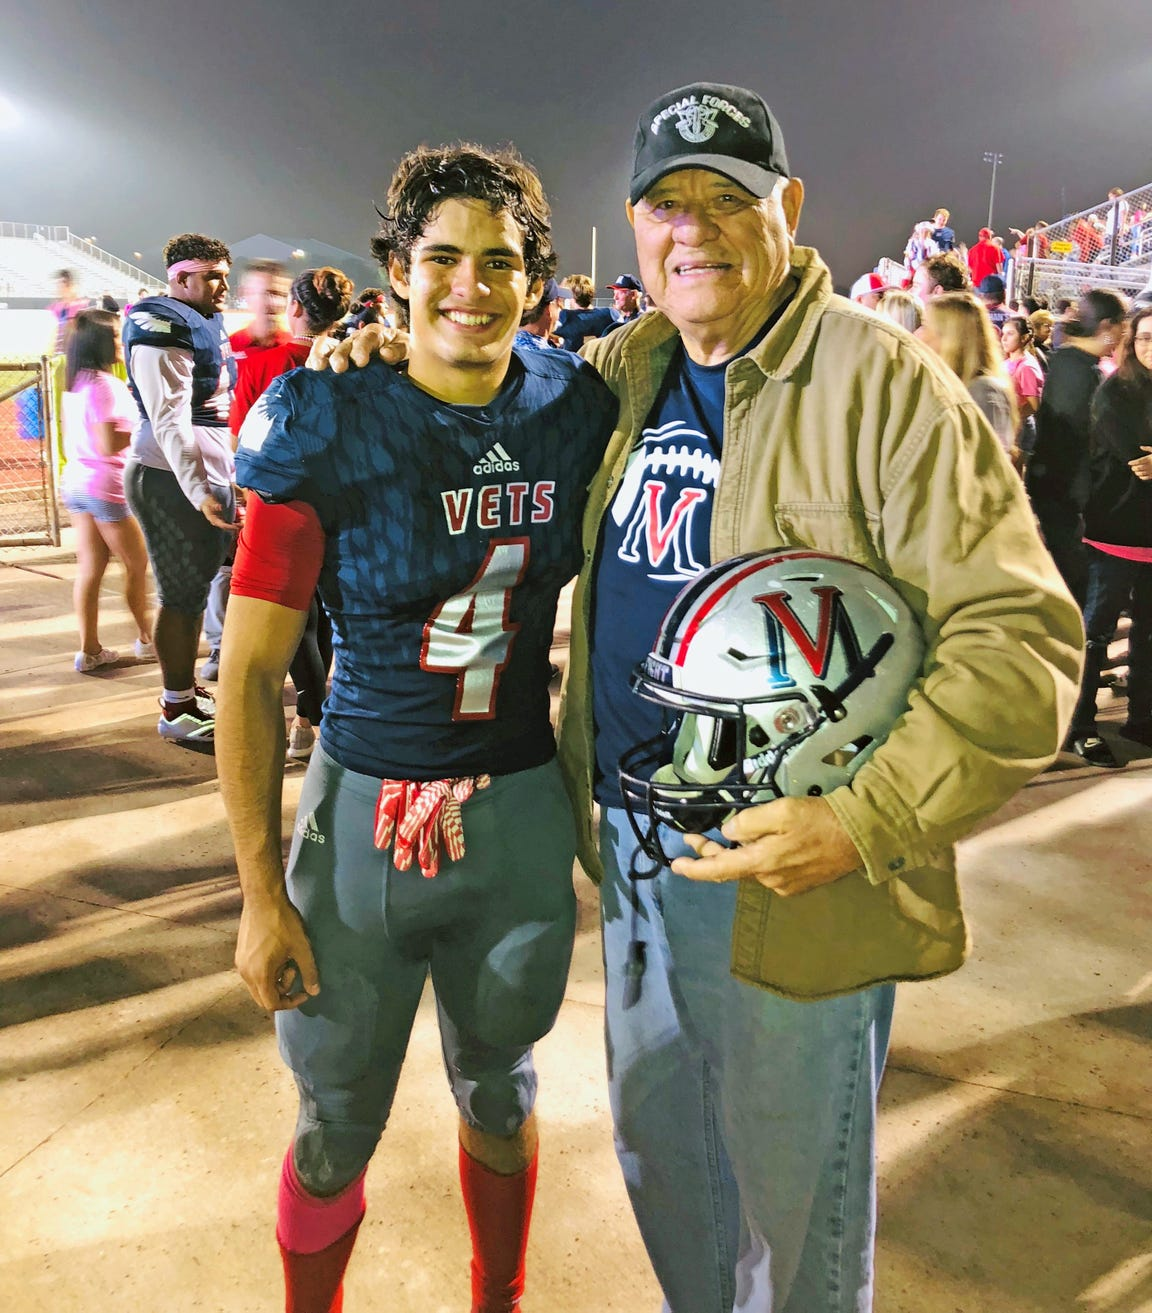 Army veteran Bill Creager and his great-grandson, Veterans Memorial player Joey Perez, participated in a veterans ceremony during this year's game between the Eagles and Flour Bluff Hornets.